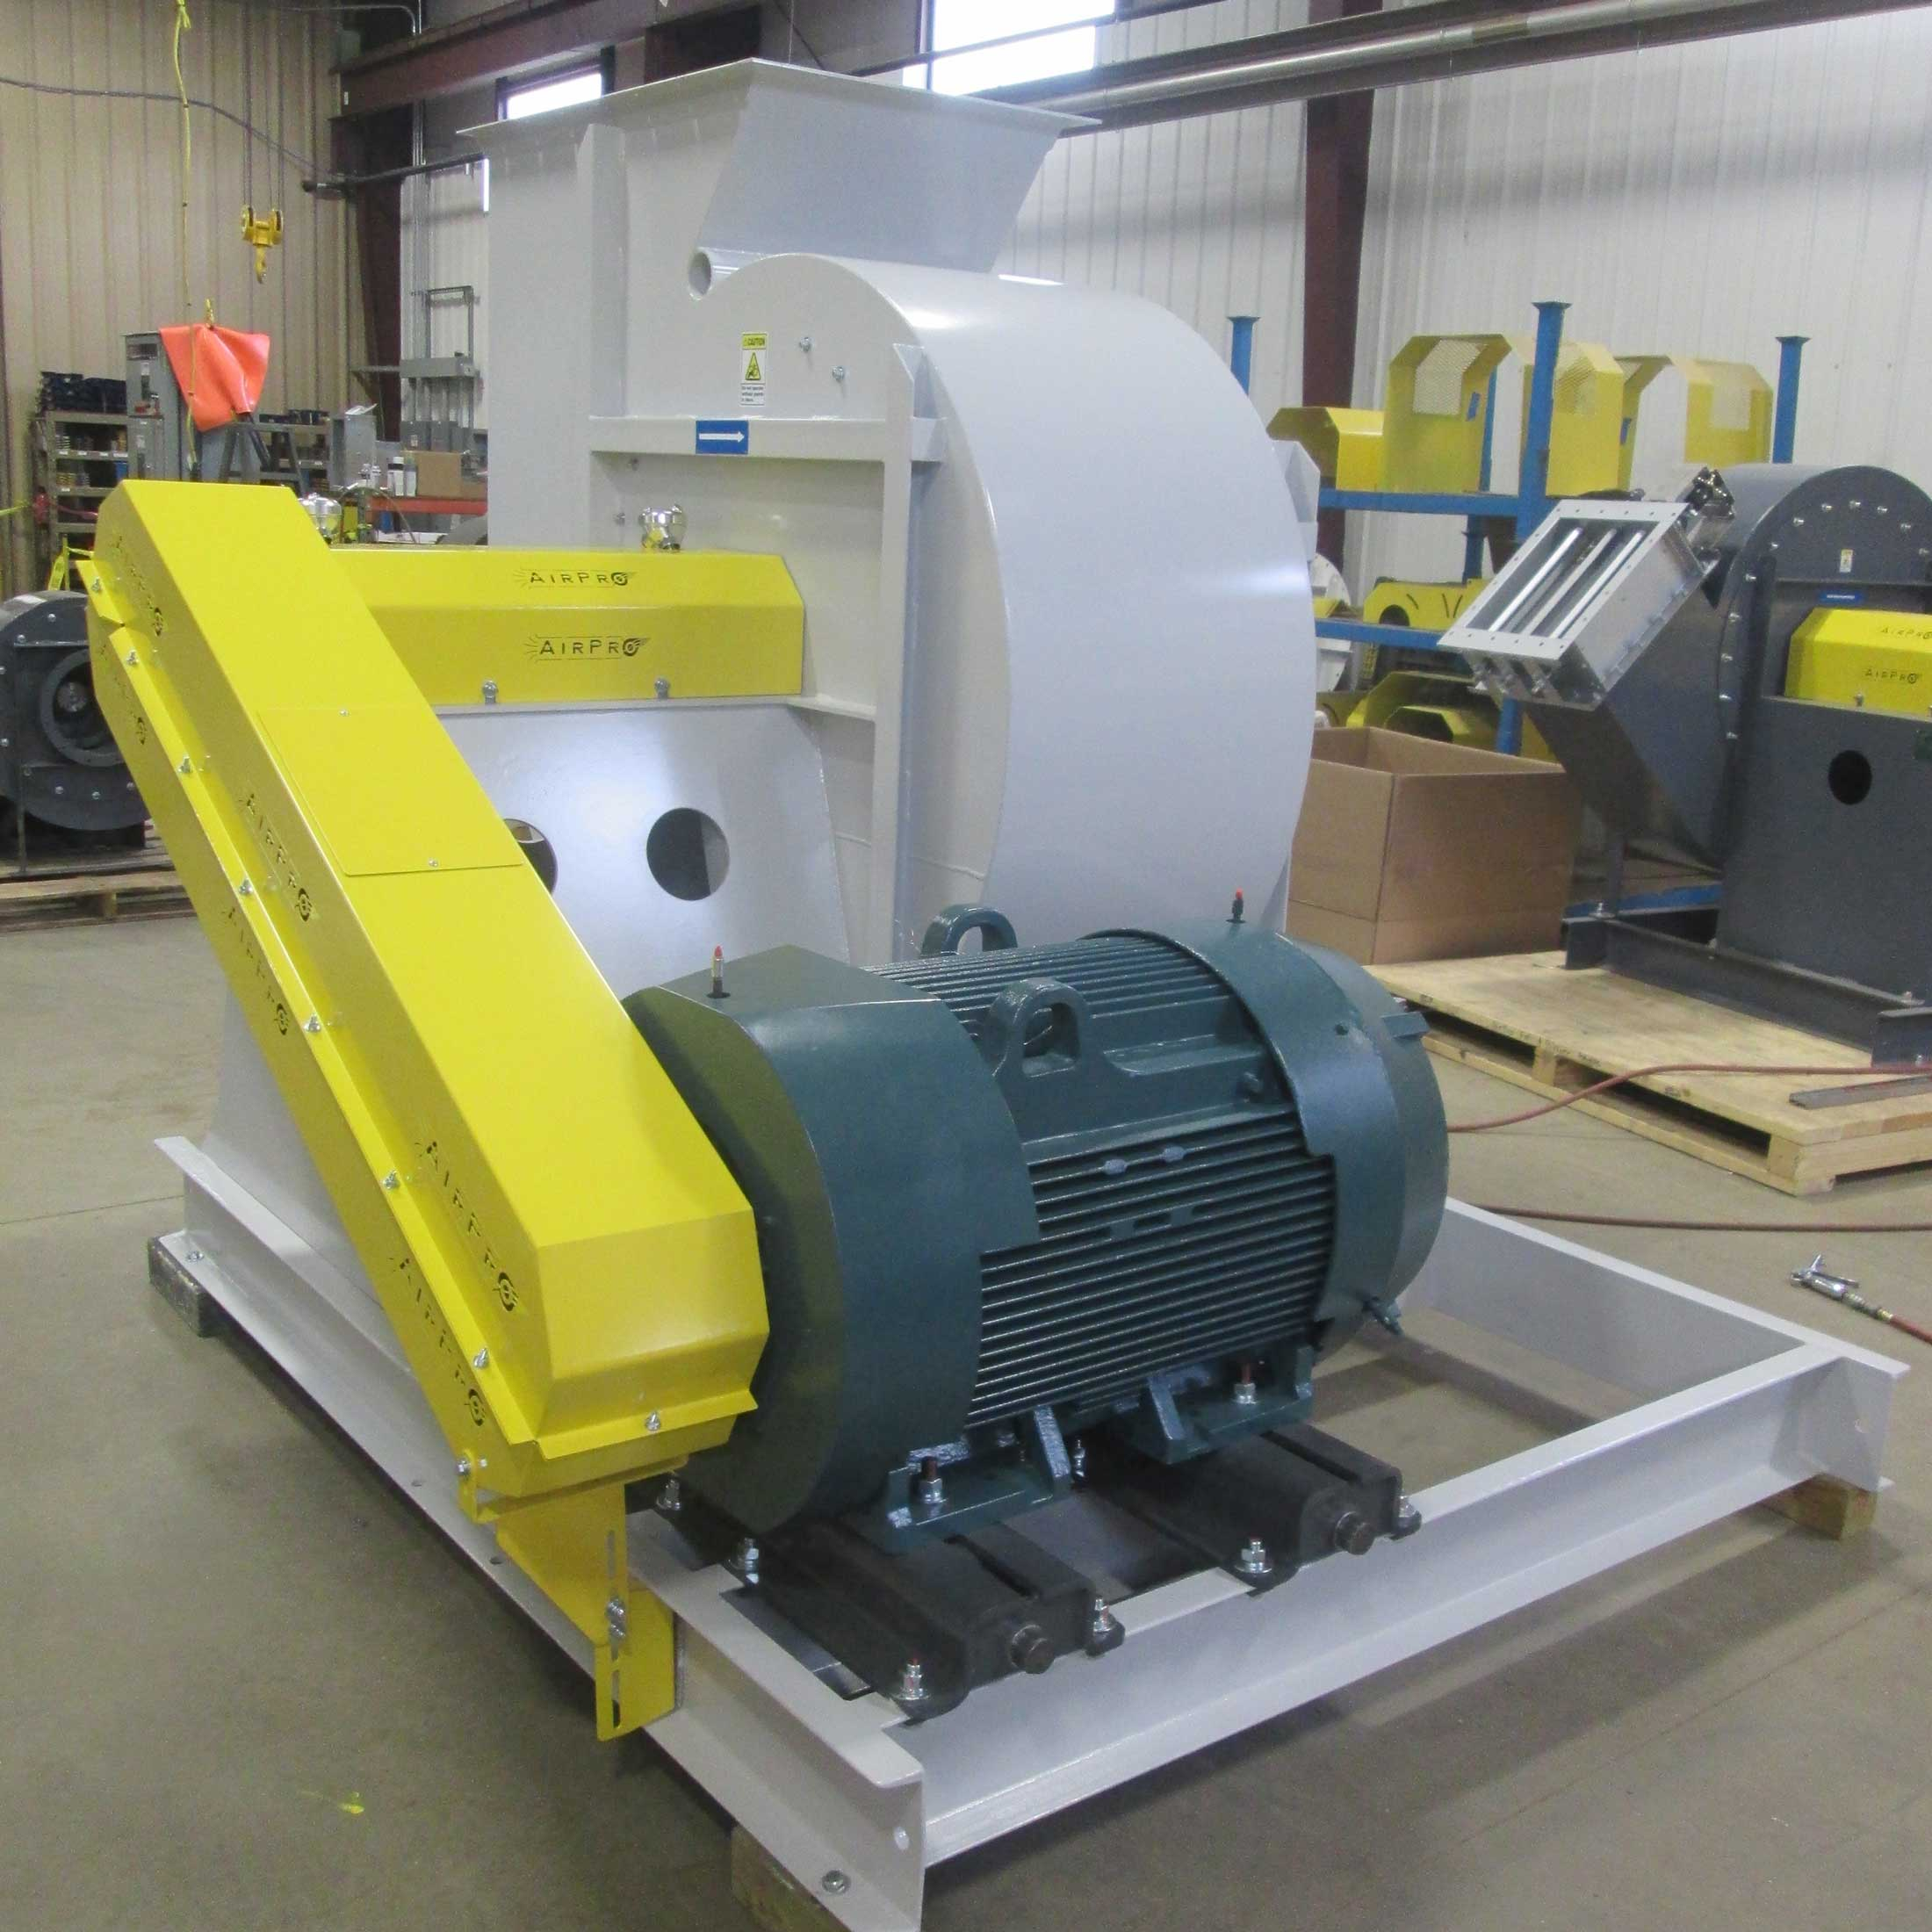 Centrifugal Fans And Blowers : Radial tipped fan airpro blower company